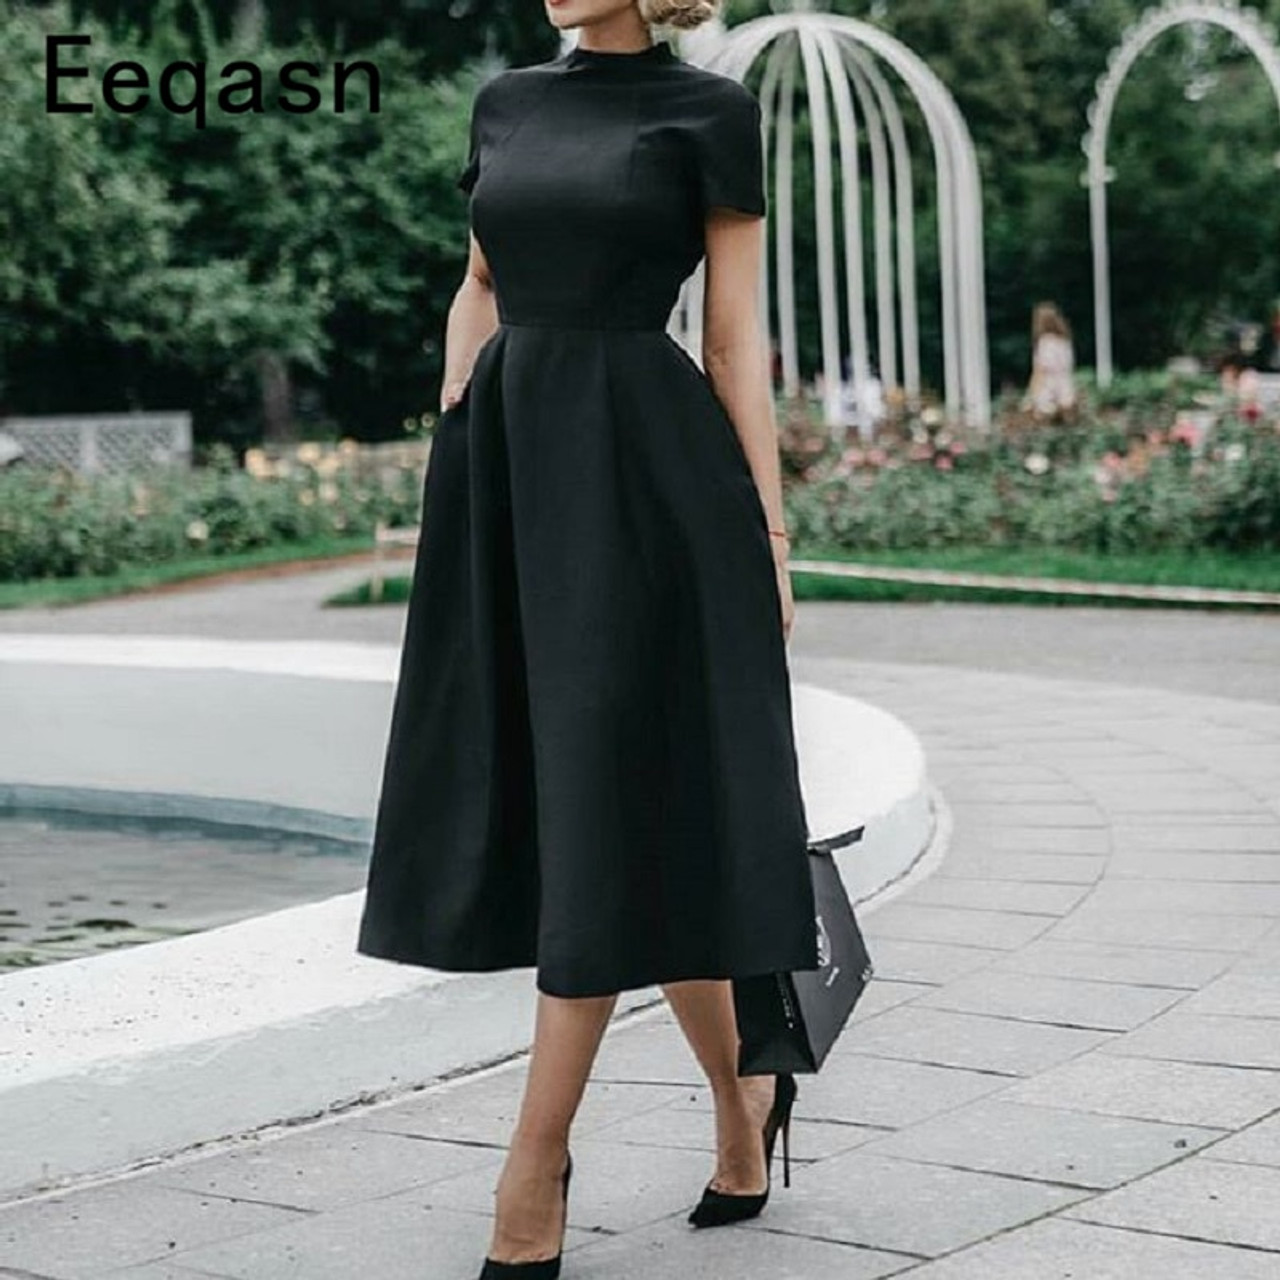 Robe De Soriee New Black Cocktail Dresses Satin Short Sleeves Elegant Homecoming Graduation Prom Party Formal Gown Onshopdeals Com